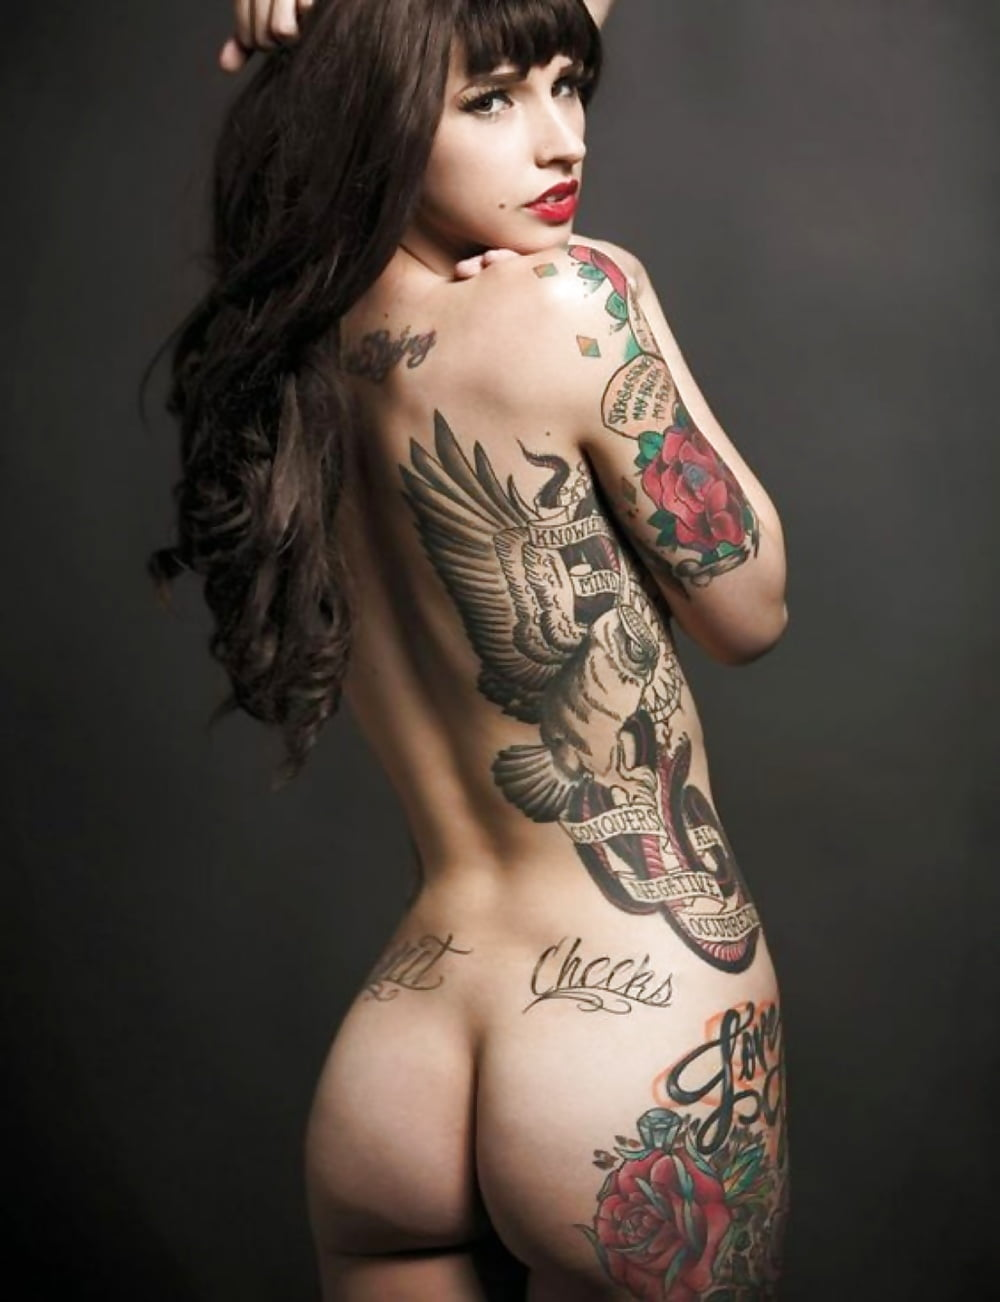 Amateur naked tattooed women